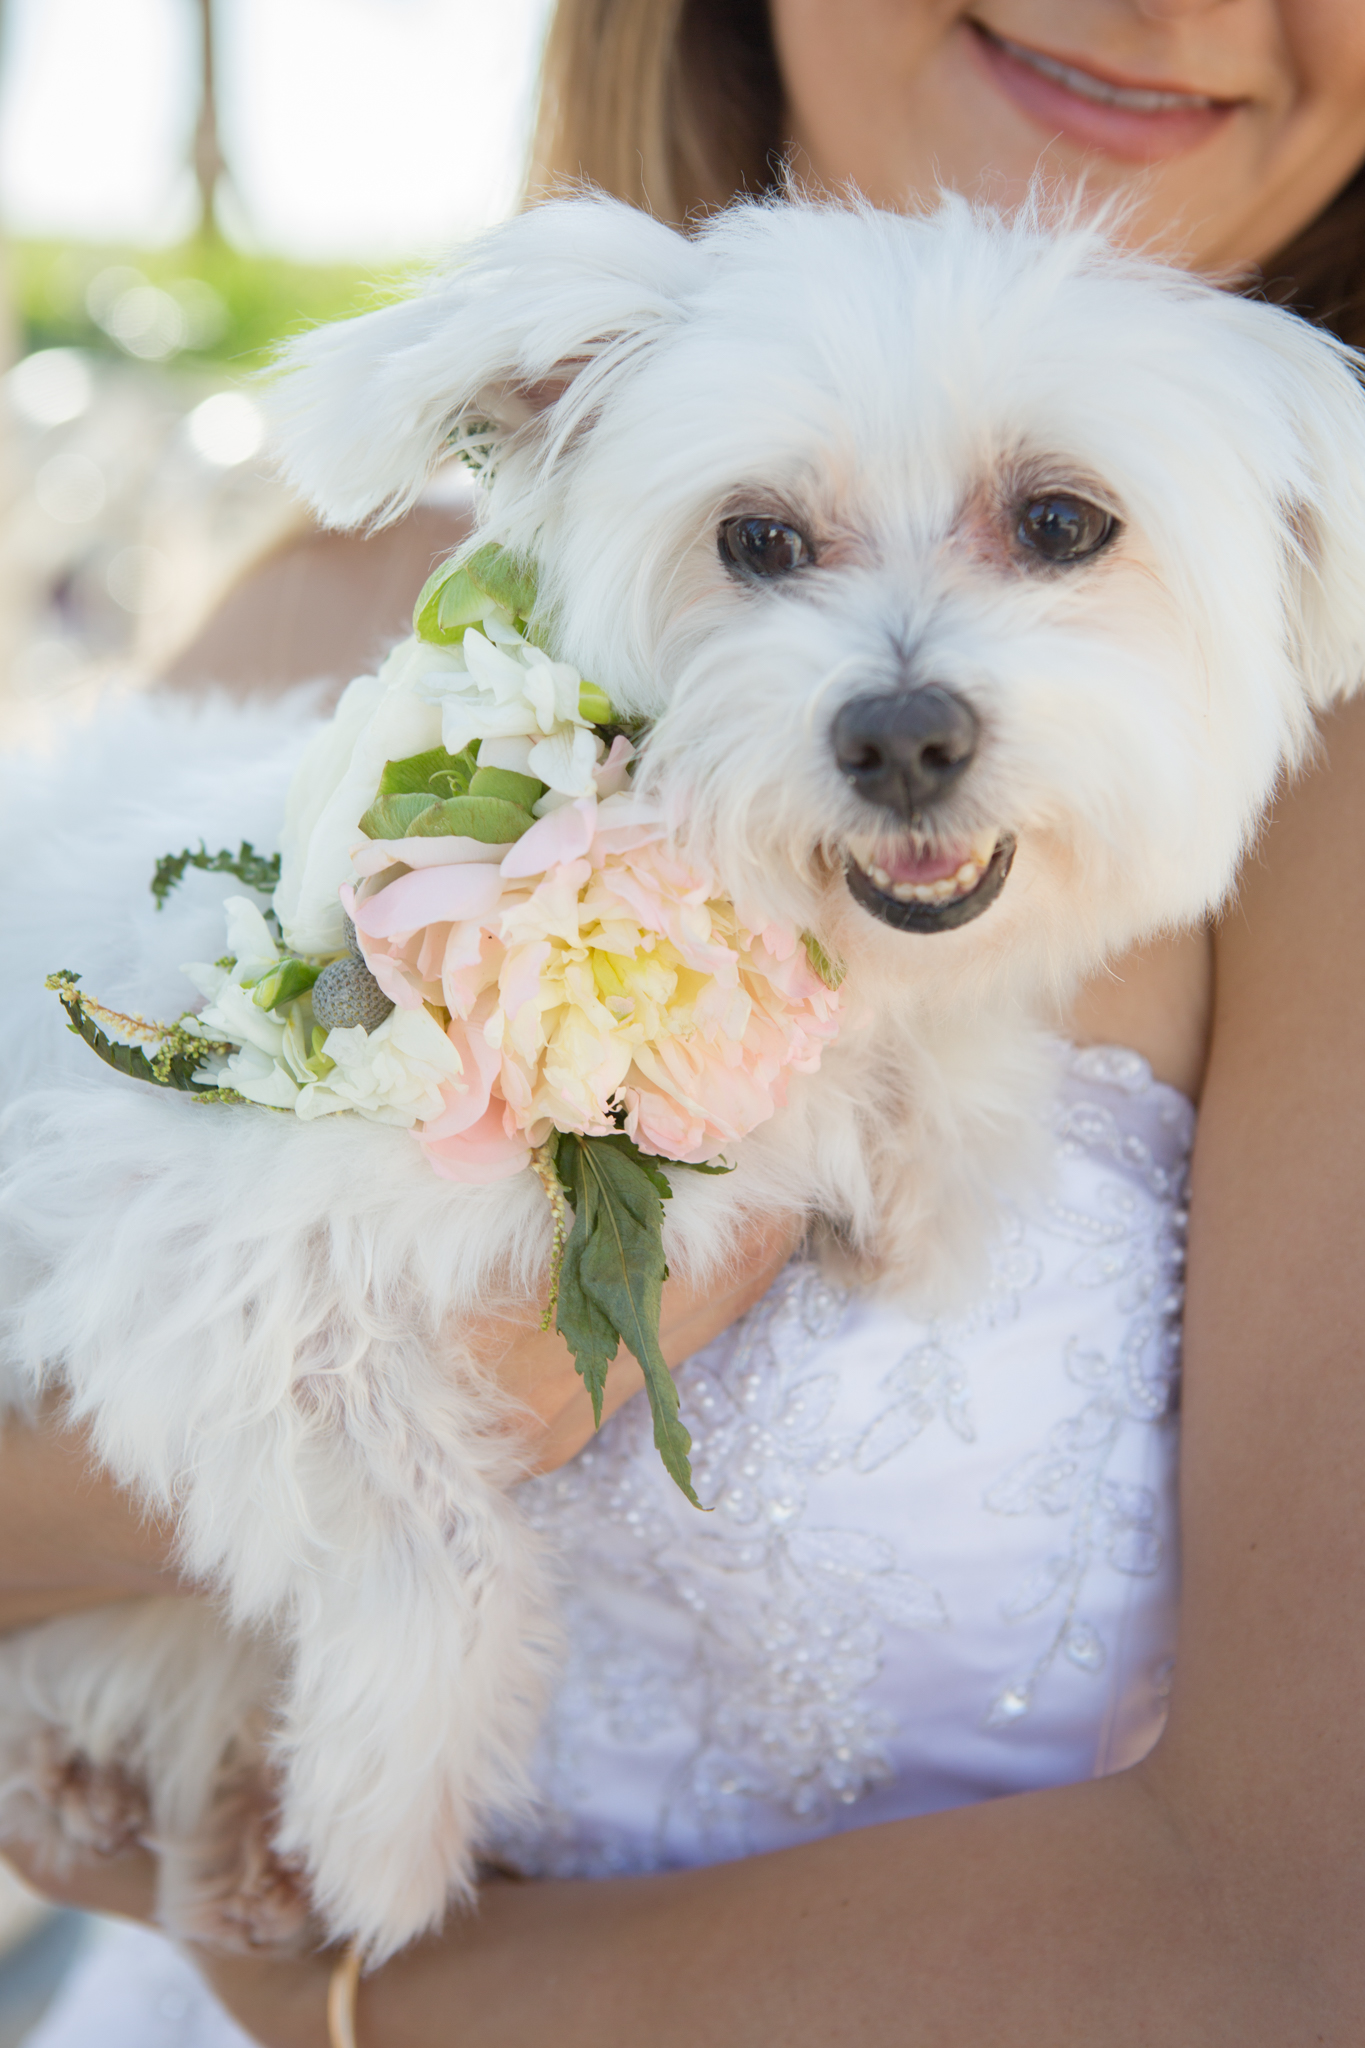 Close-up of Coco the dog with bridal floral collar at beach wedding